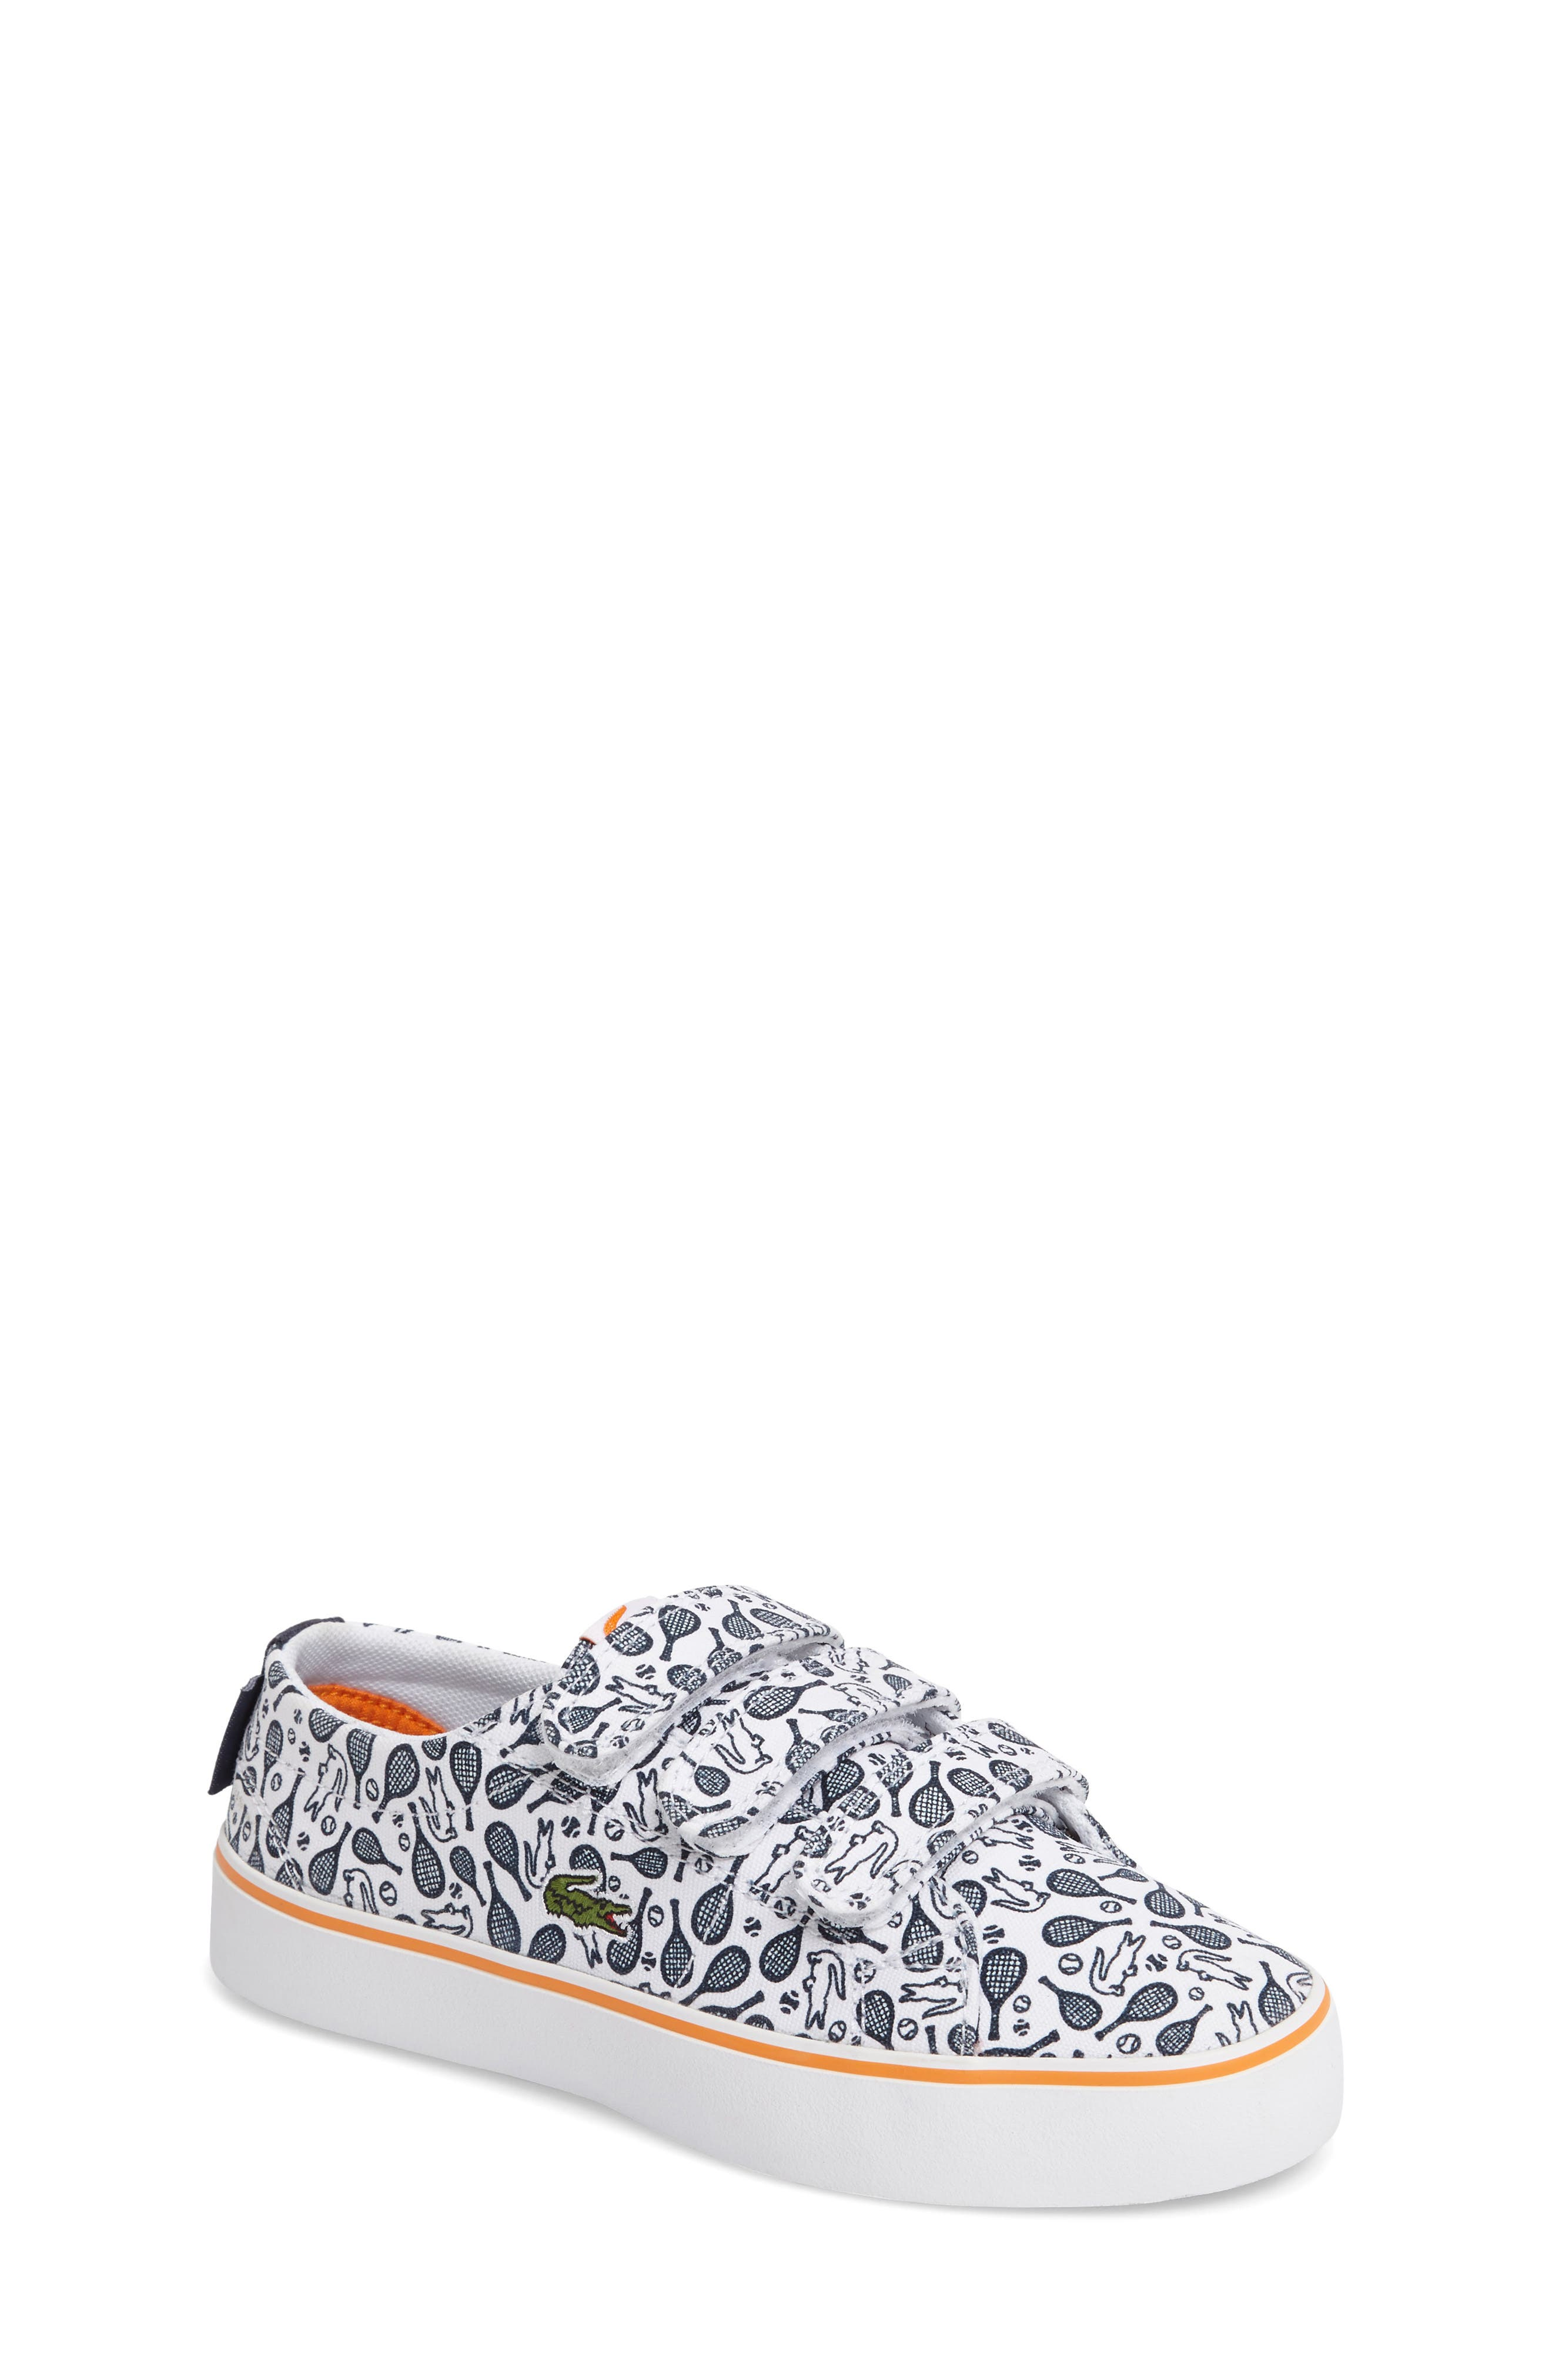 Marcel Chunky Tennis Racket Sneaker,                         Main,                         color, 411